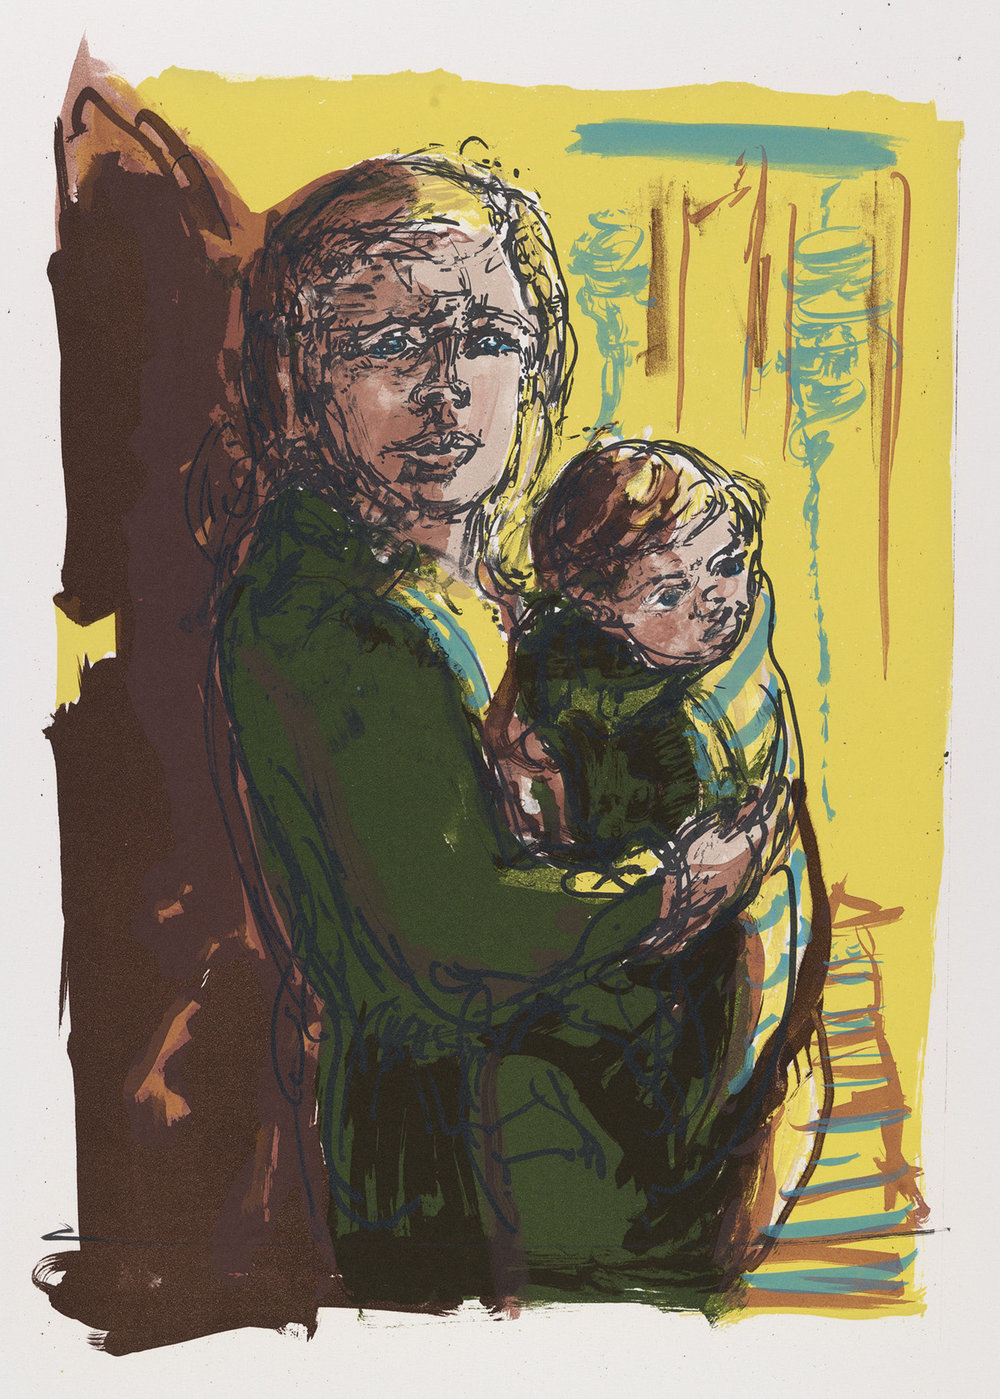 C.Goodman_REFUGEE CHILD_2015-16_Lithograph on paper_51 x 38cm.jpg